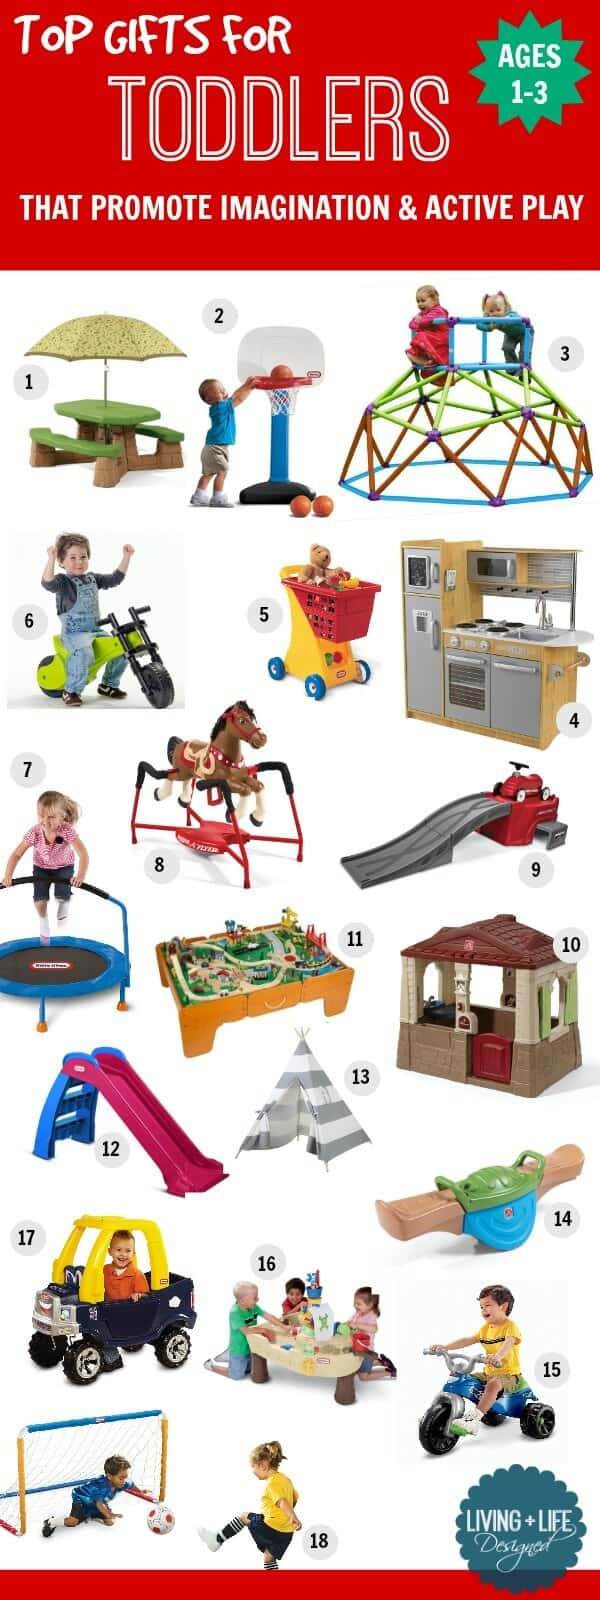 Great Toys For 3 Year Old Boys : Gifts for toddlers years old that promote imagination